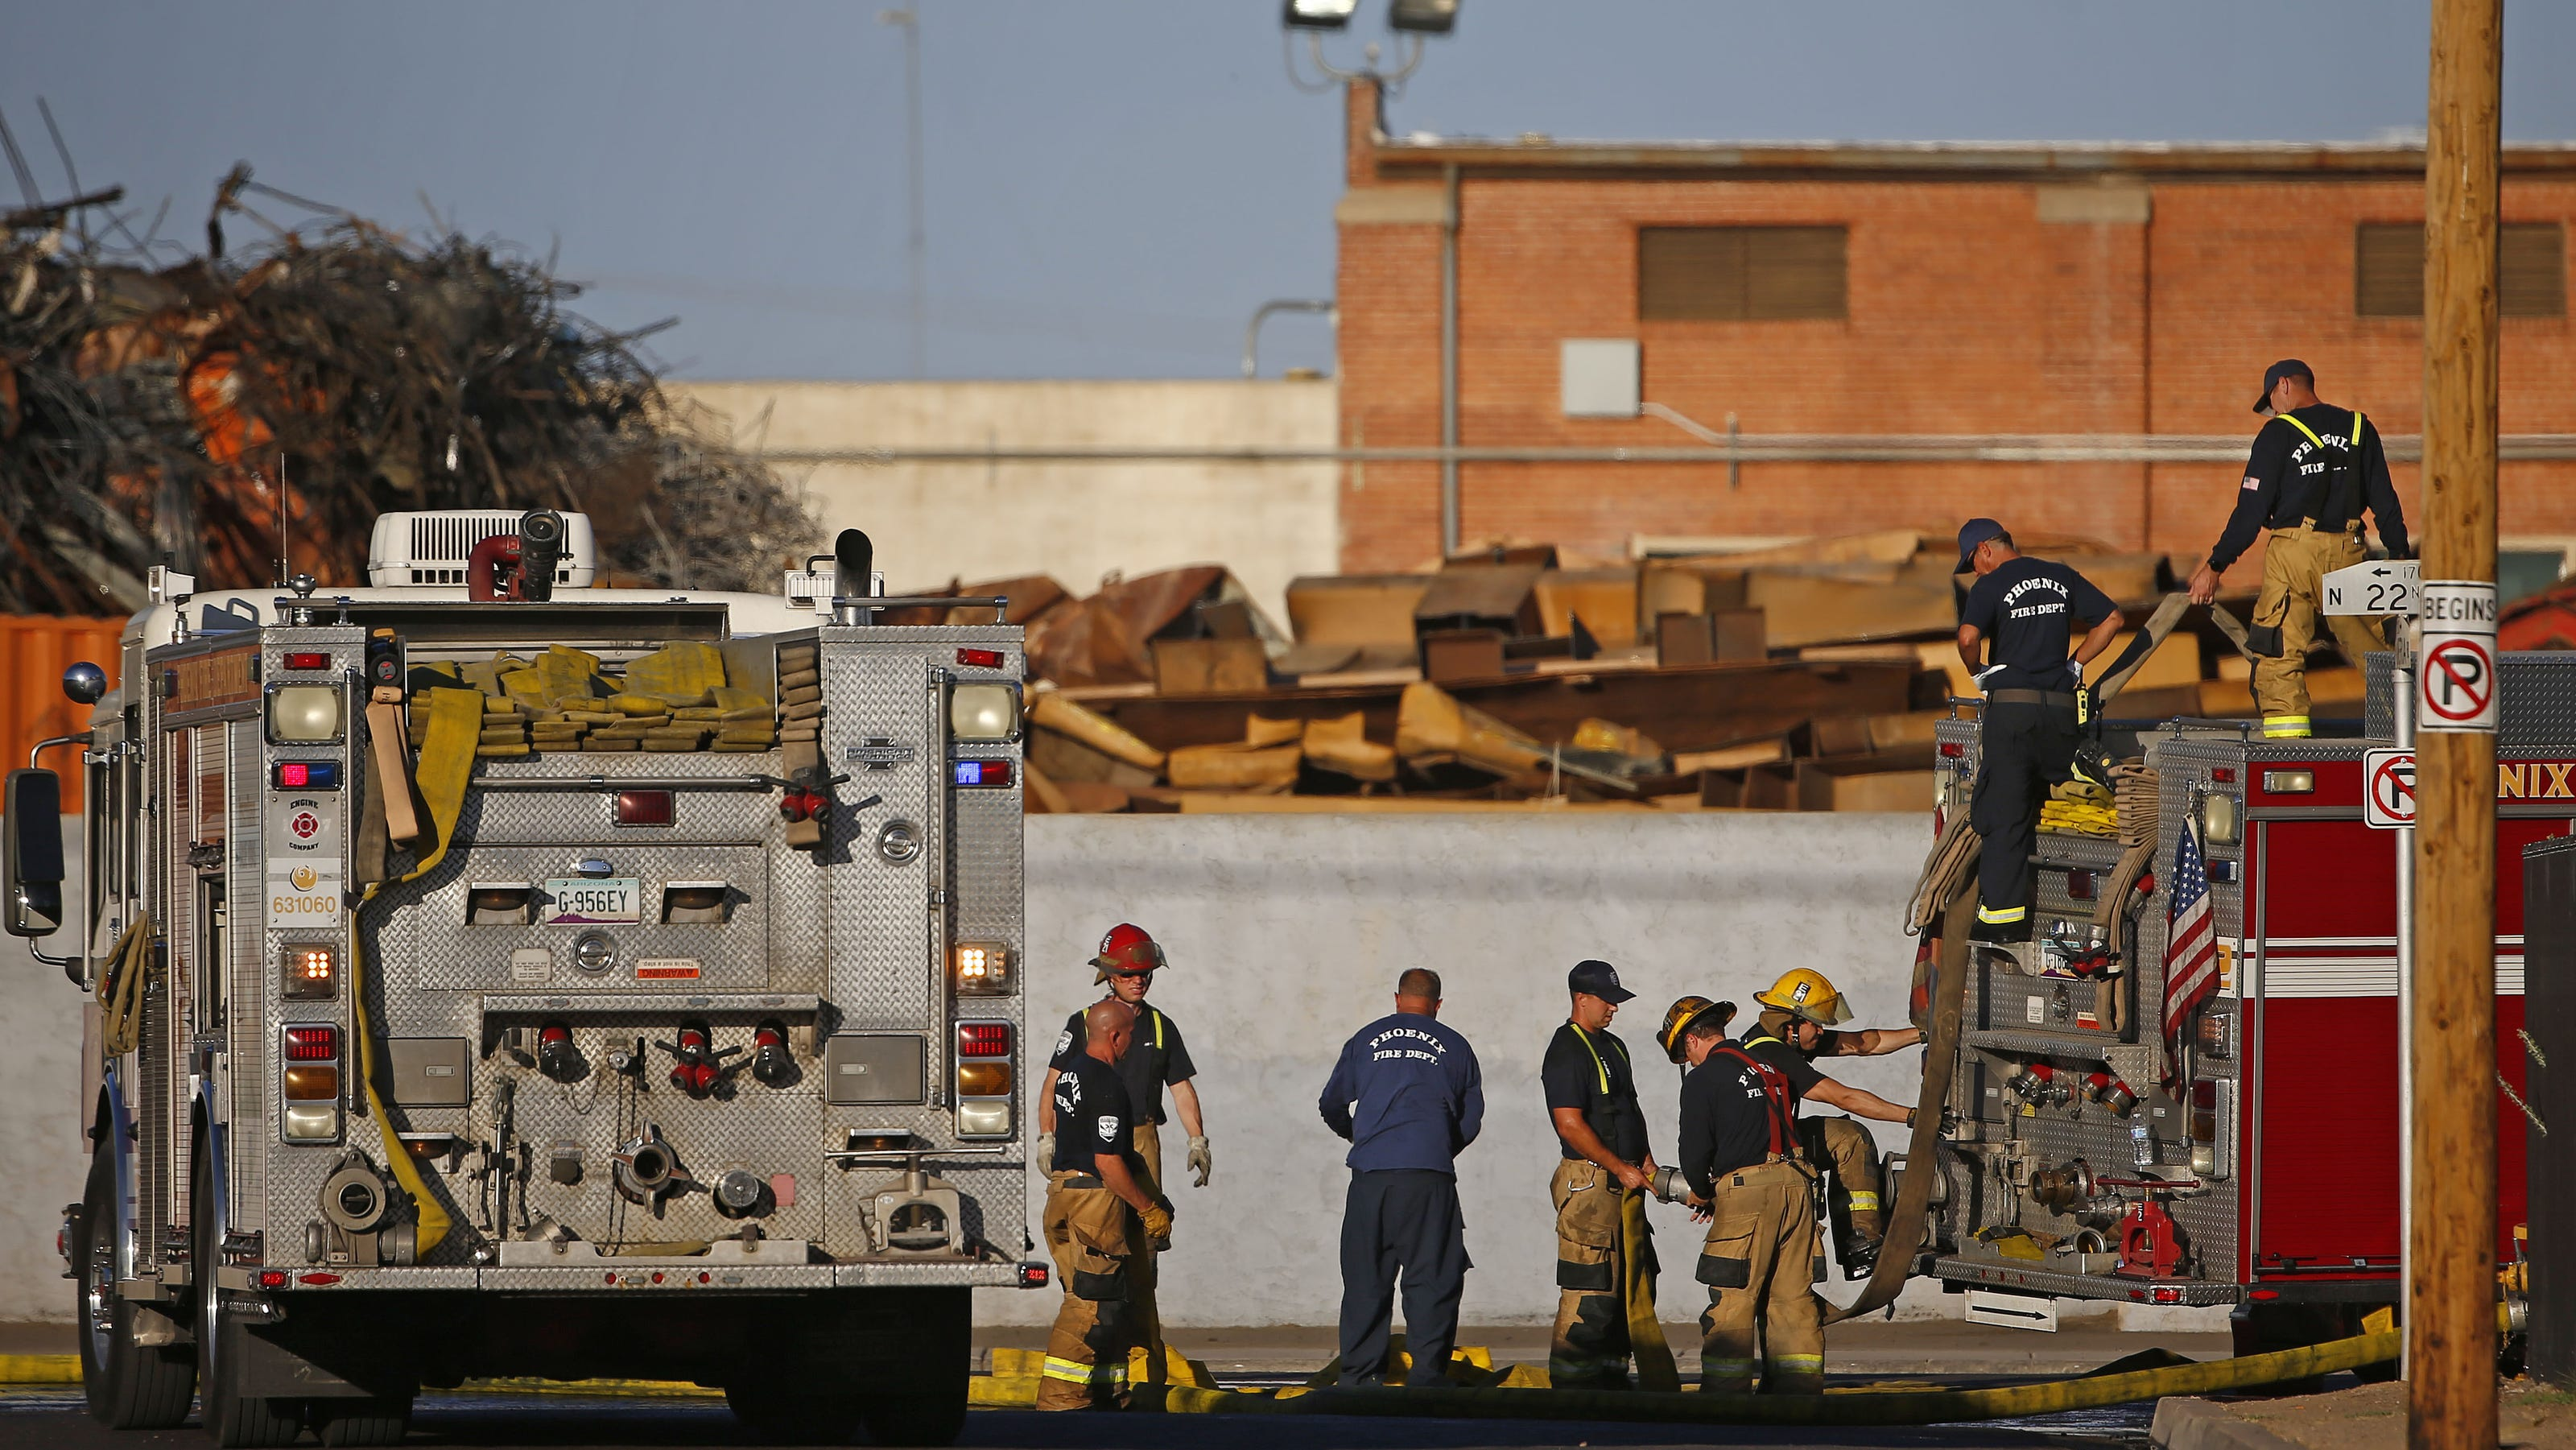 Firefighters working to extinguish yet another fire at Phoenix recycling plant